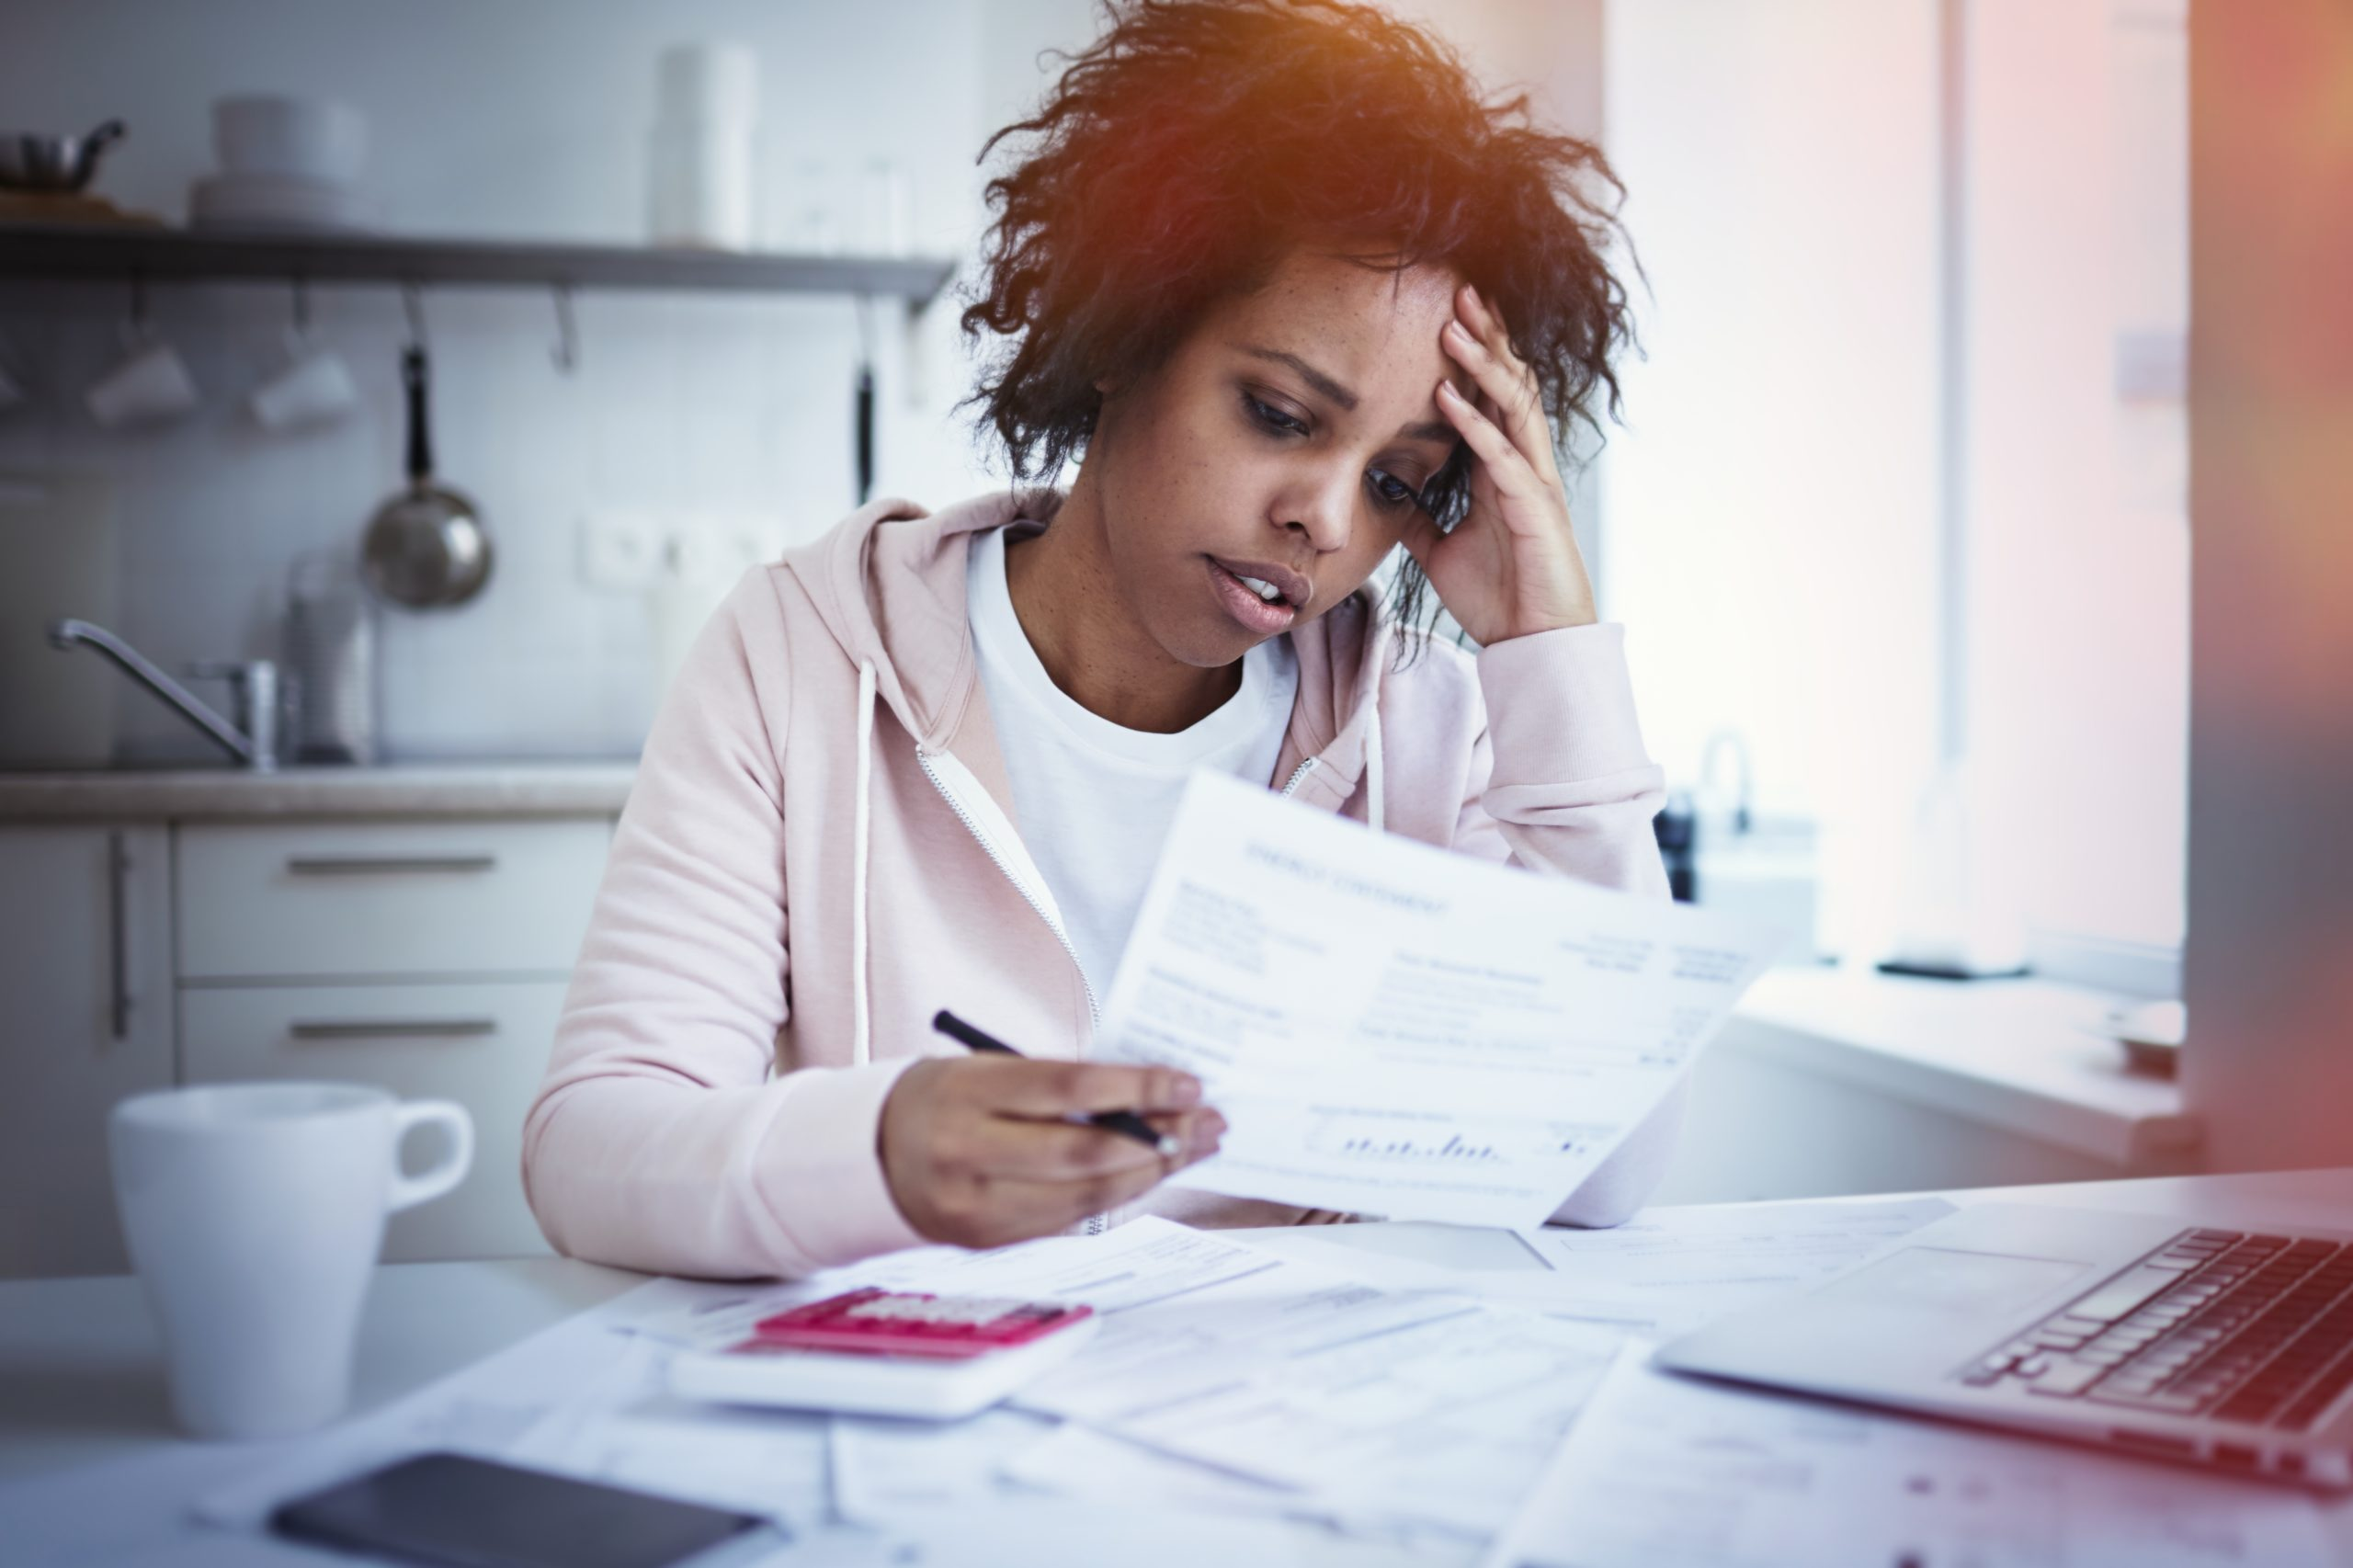 Young upset african american female sitting at kitchen table with laptop dealing with financial stress feeling pressure because of mortgage debt worrying a lot or feeling anxious over money